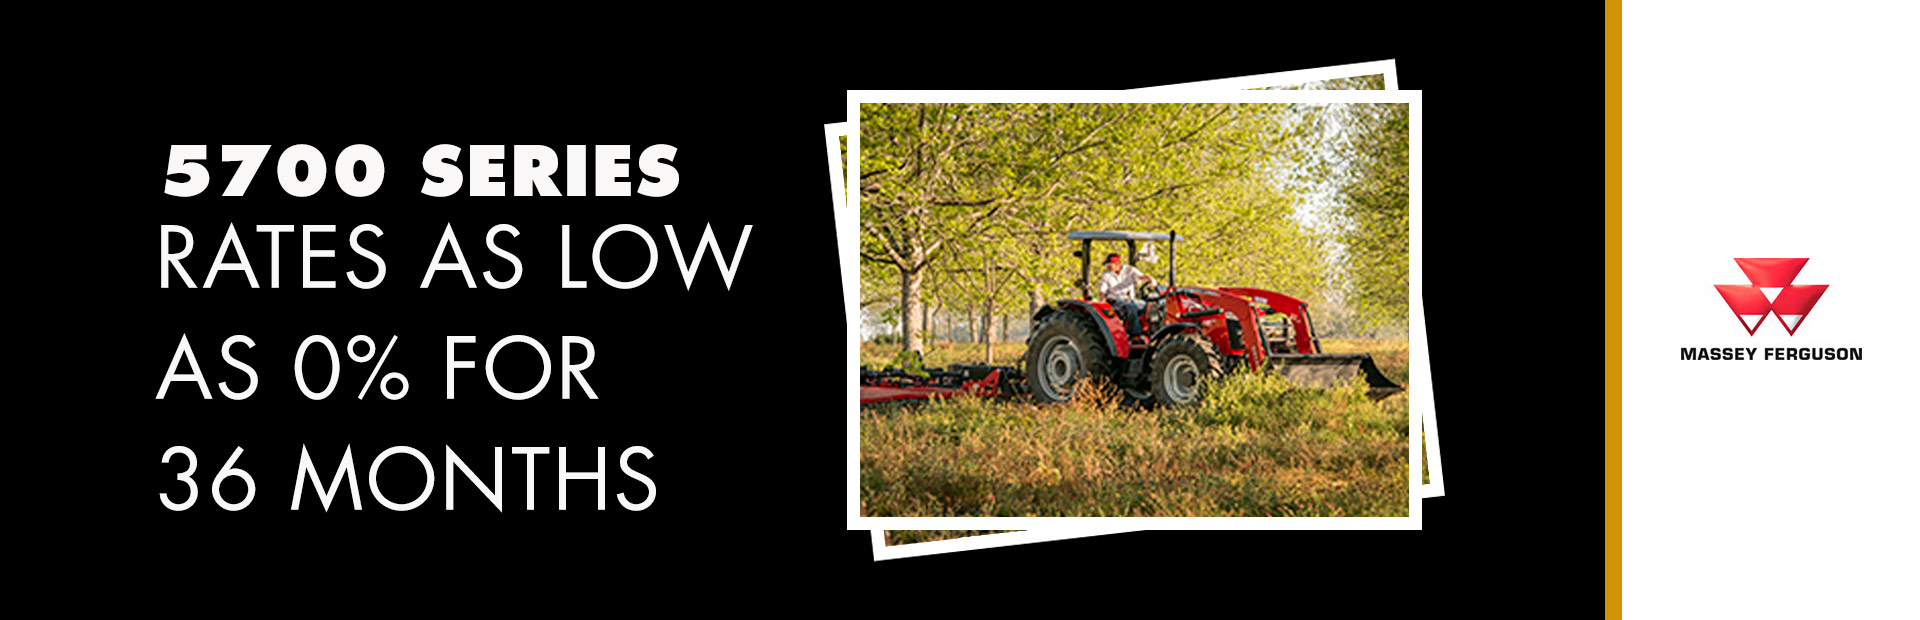 Massey Ferguson: 5700 Series - Rates as low as 0% for 36 Months